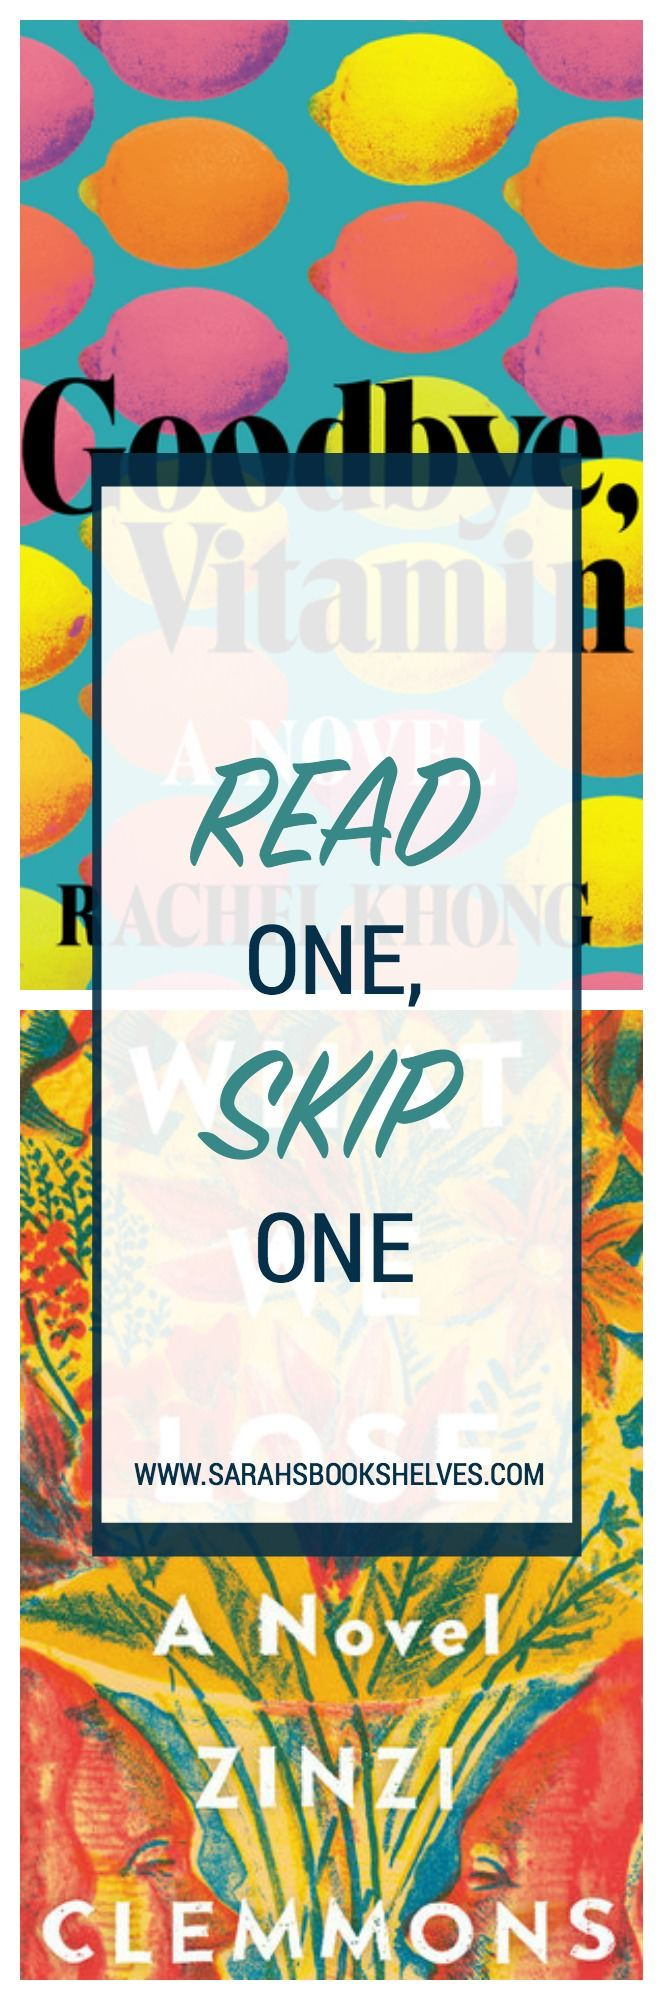 Today's Read One, Skip One is all about short books told in a vignette style...one that worked (Goodbye, Vitamin) & one that didn't (What We Lose).